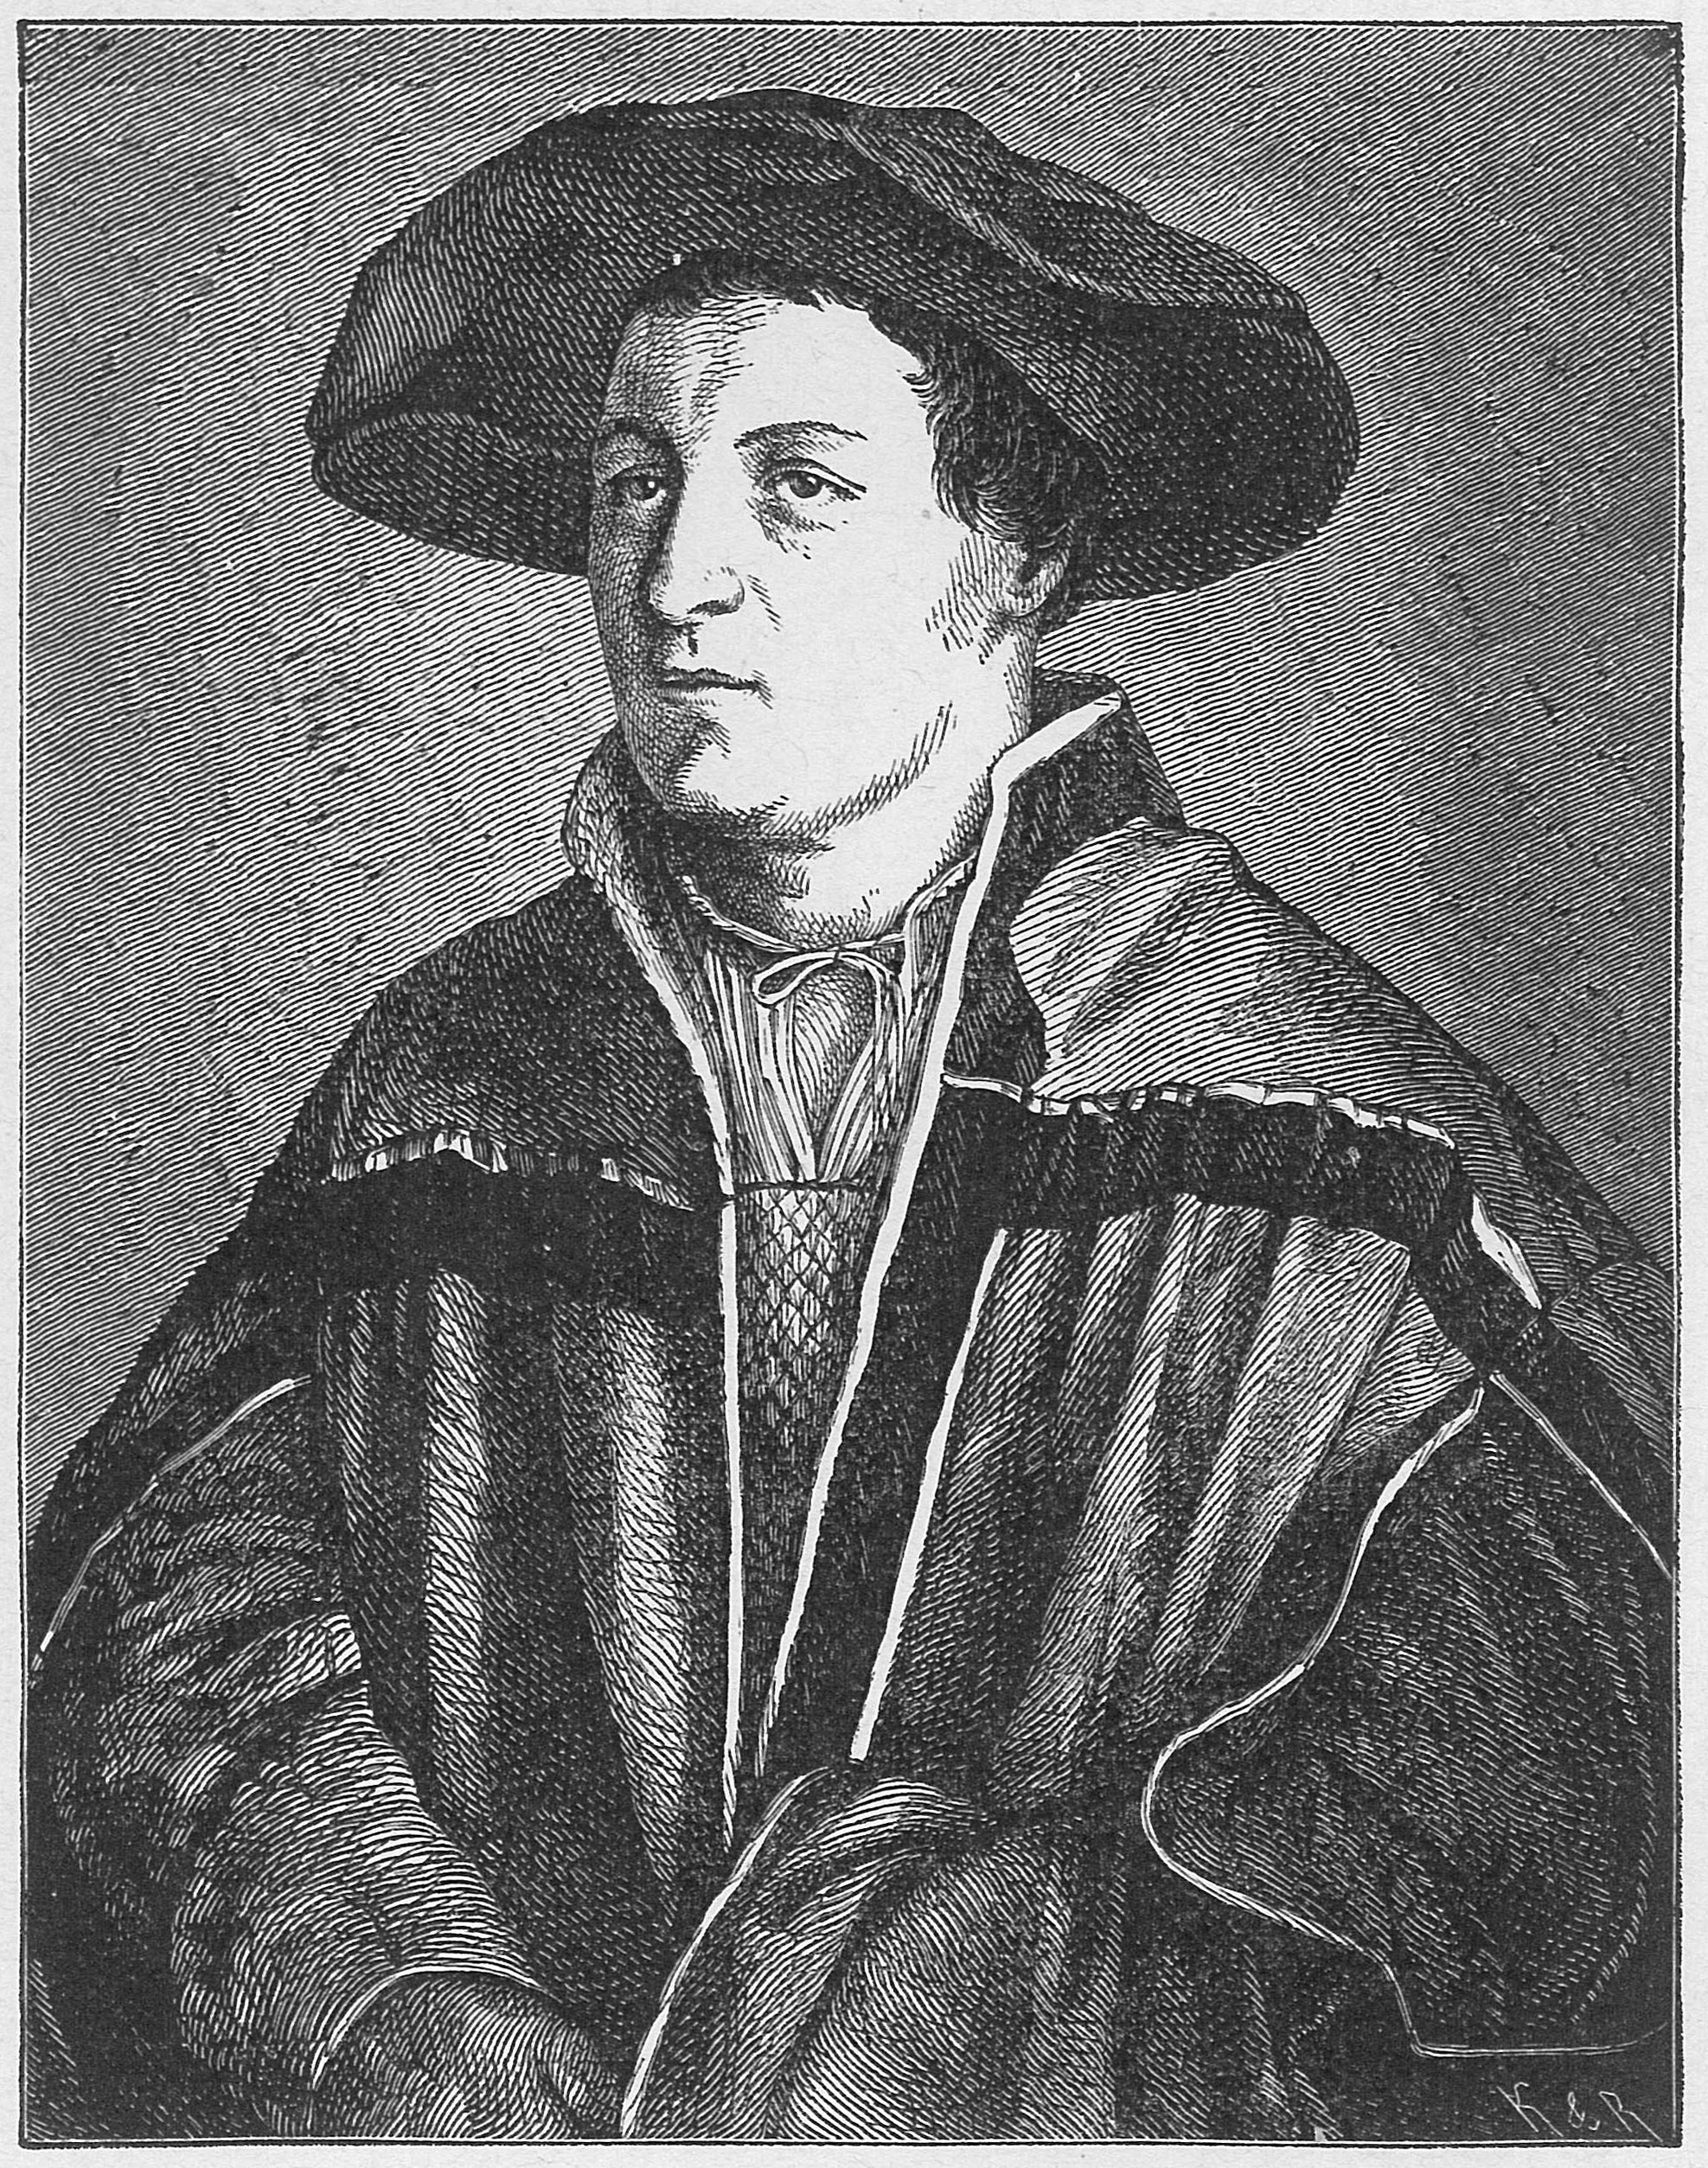 Self Portrait of Hans Holbein the Younger, drawing around 1520